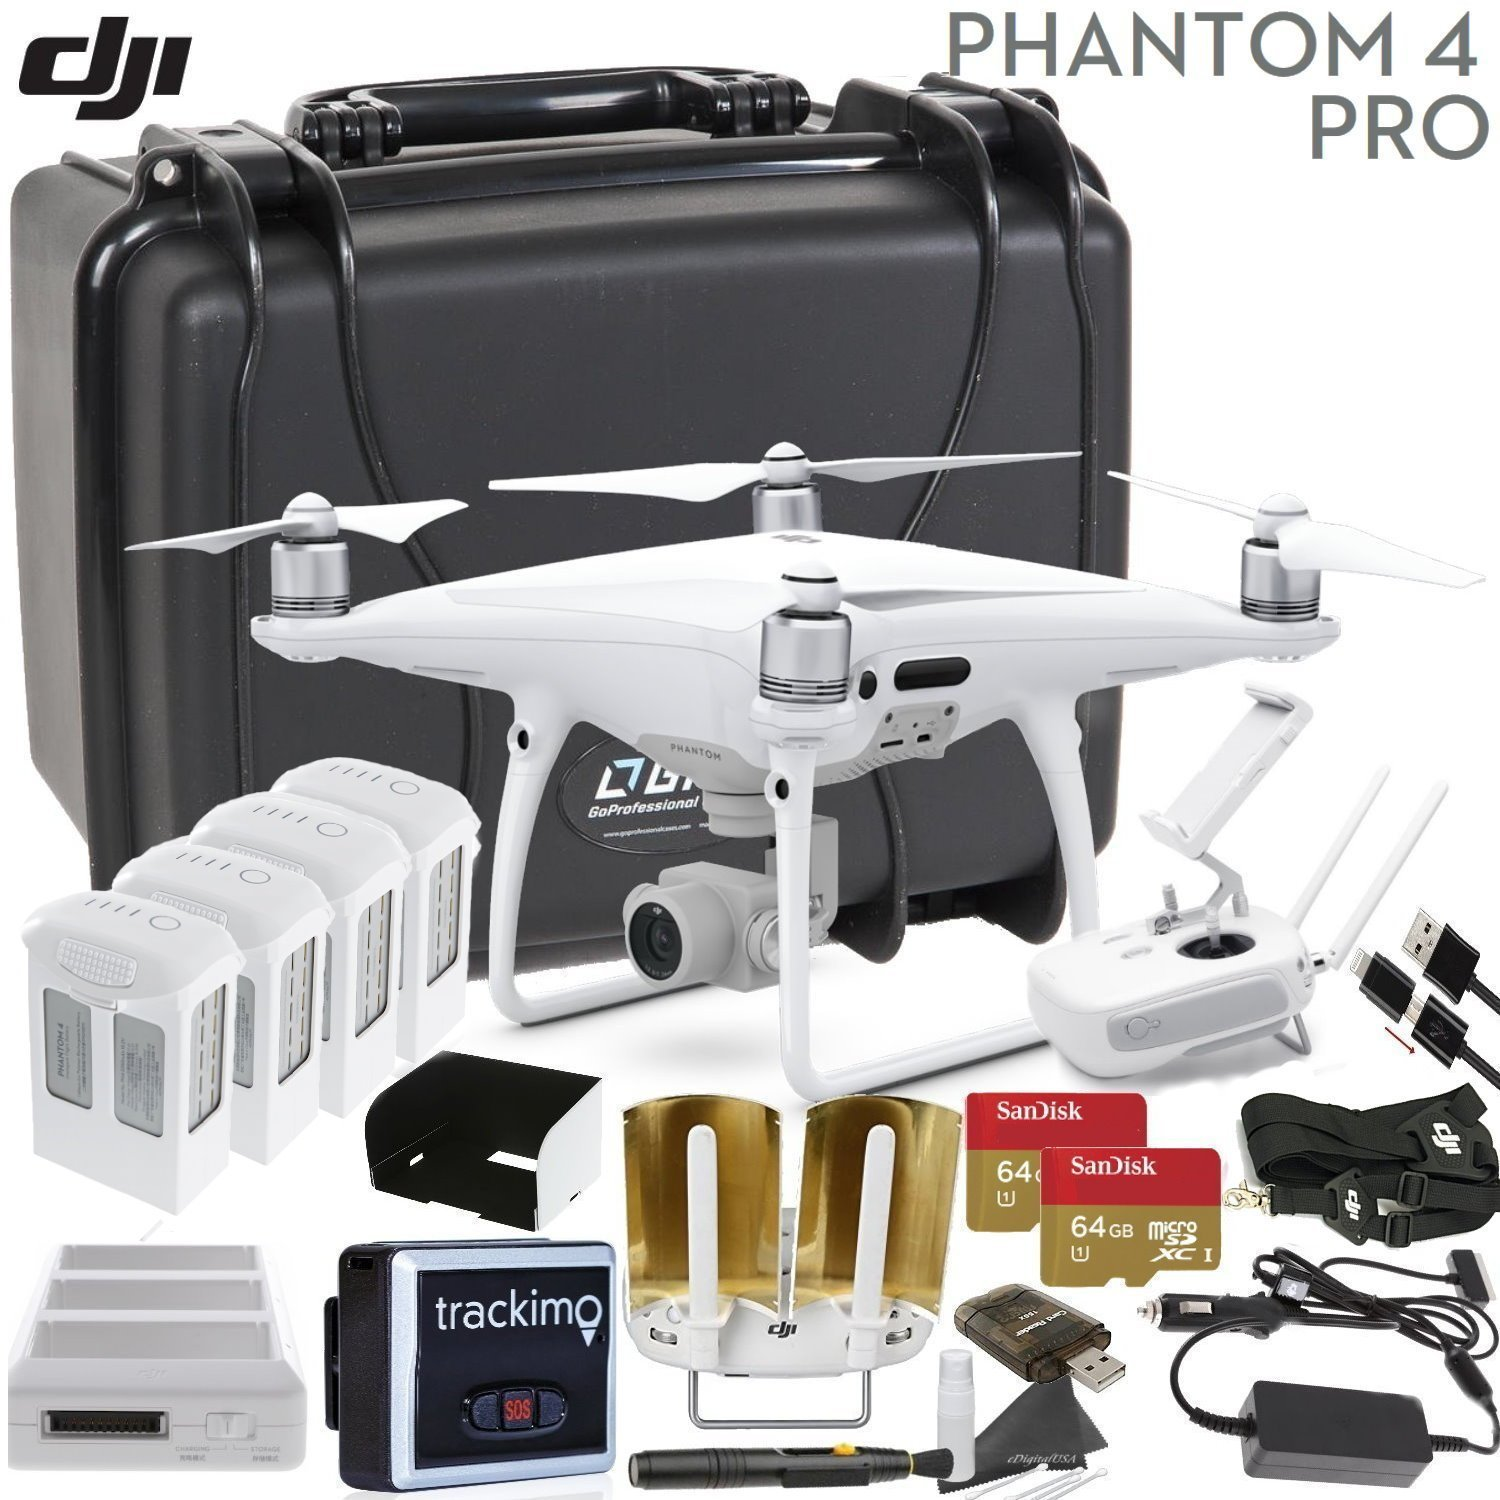 DJI Phantom 4 PRO V2.0 Executive Bundle: Includes Antenna Range Extenders, Trackimo GPS Tracker, 2x SanDisk 64GB High Speed Memory Cards, Go Professional Wheeled Case & More... by DJI